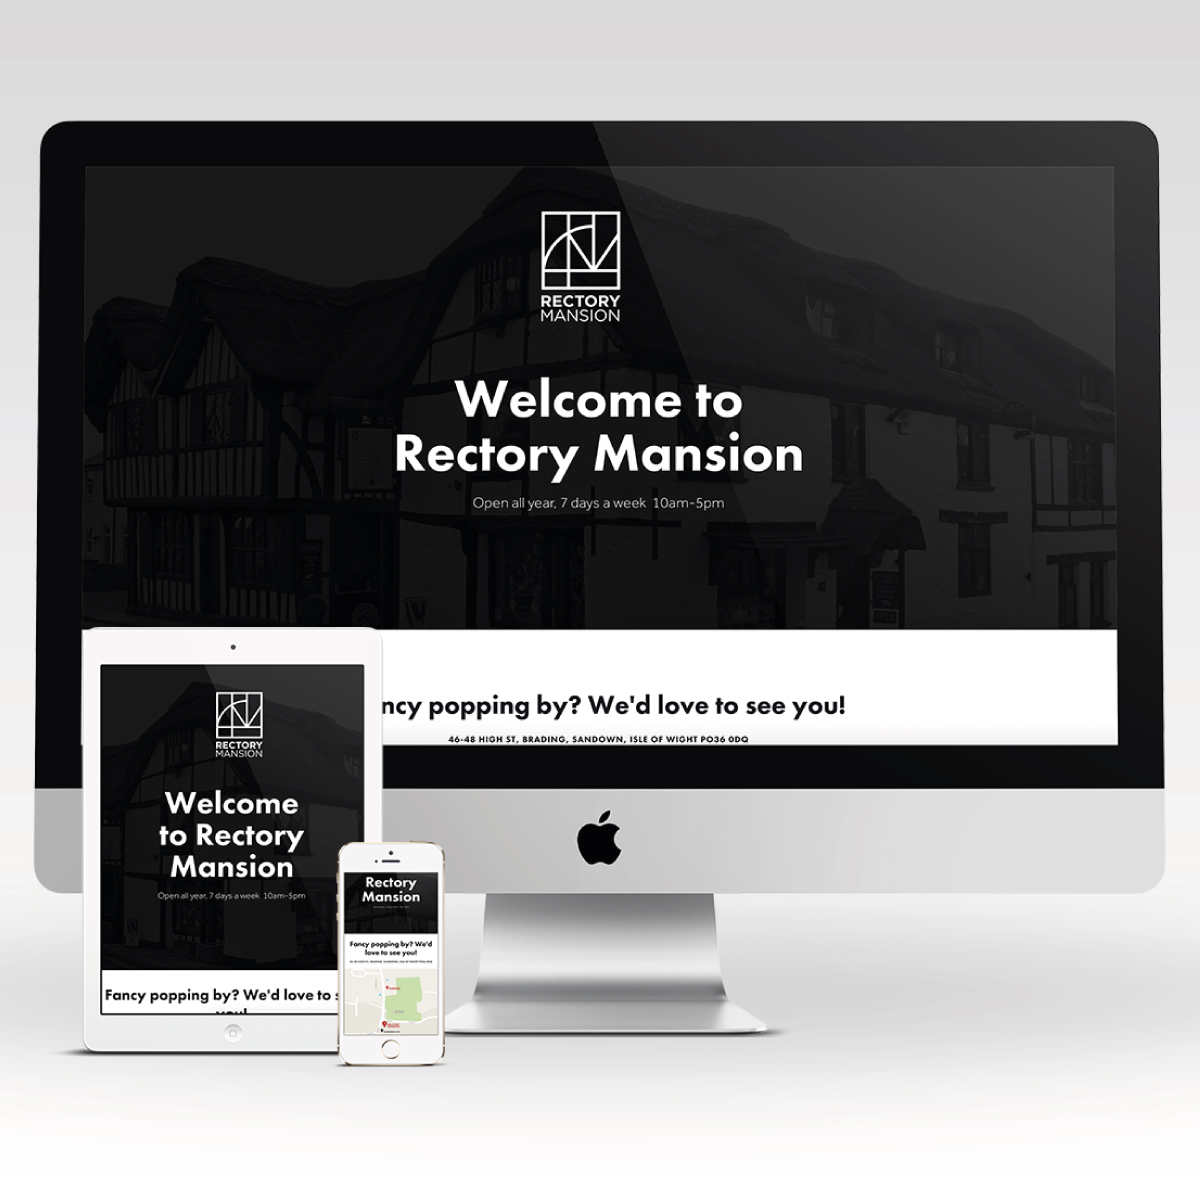 Rectory Mansion Mobile responsive website